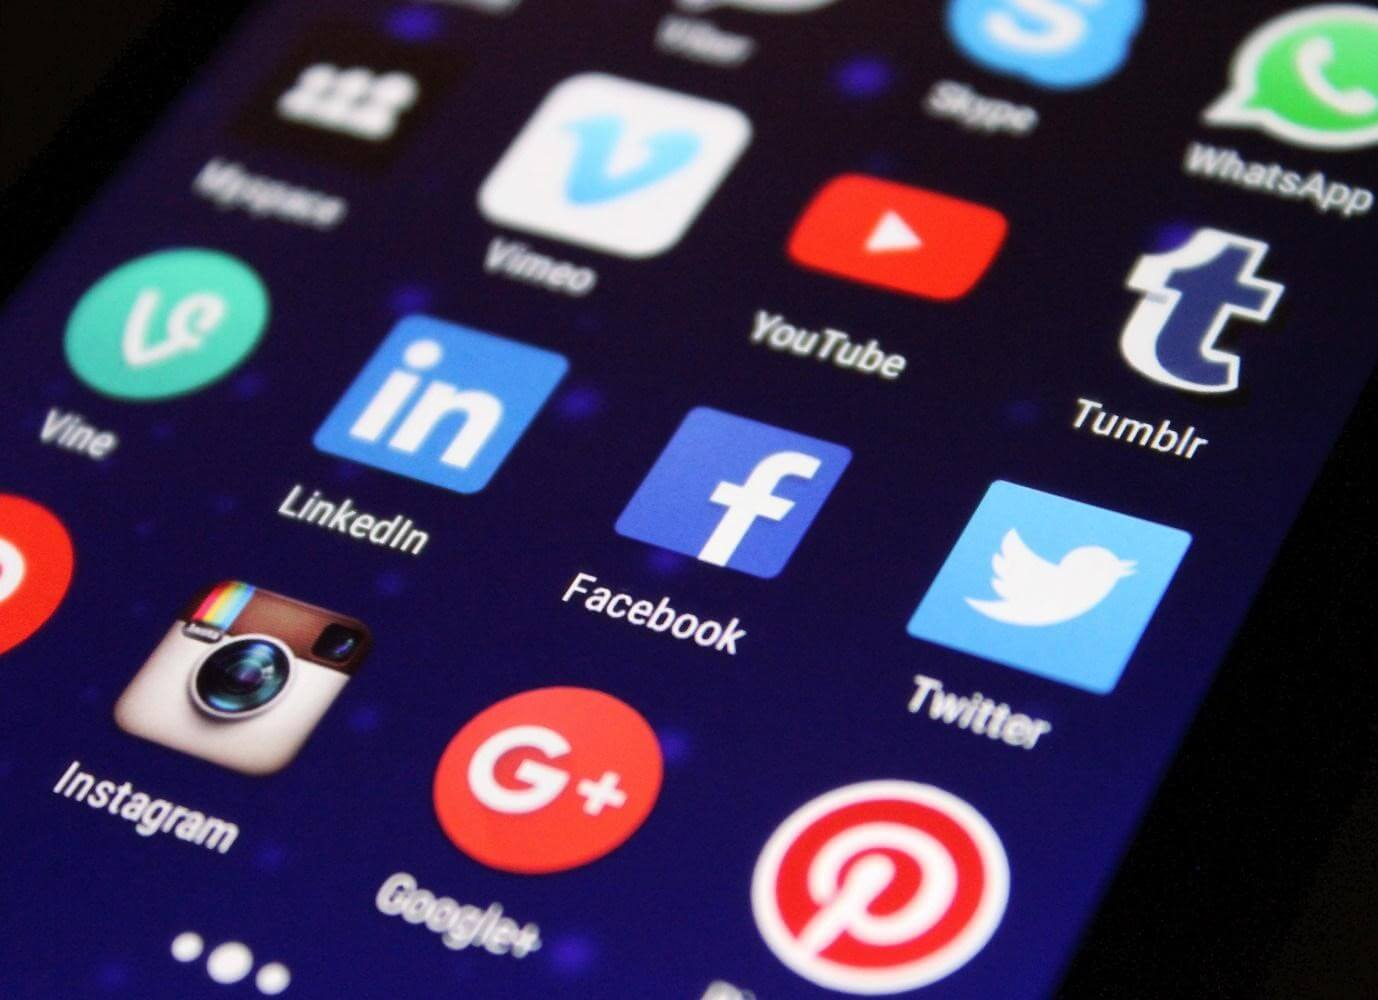 Branding in 2018: How to Utilise Your Social Media Accounts